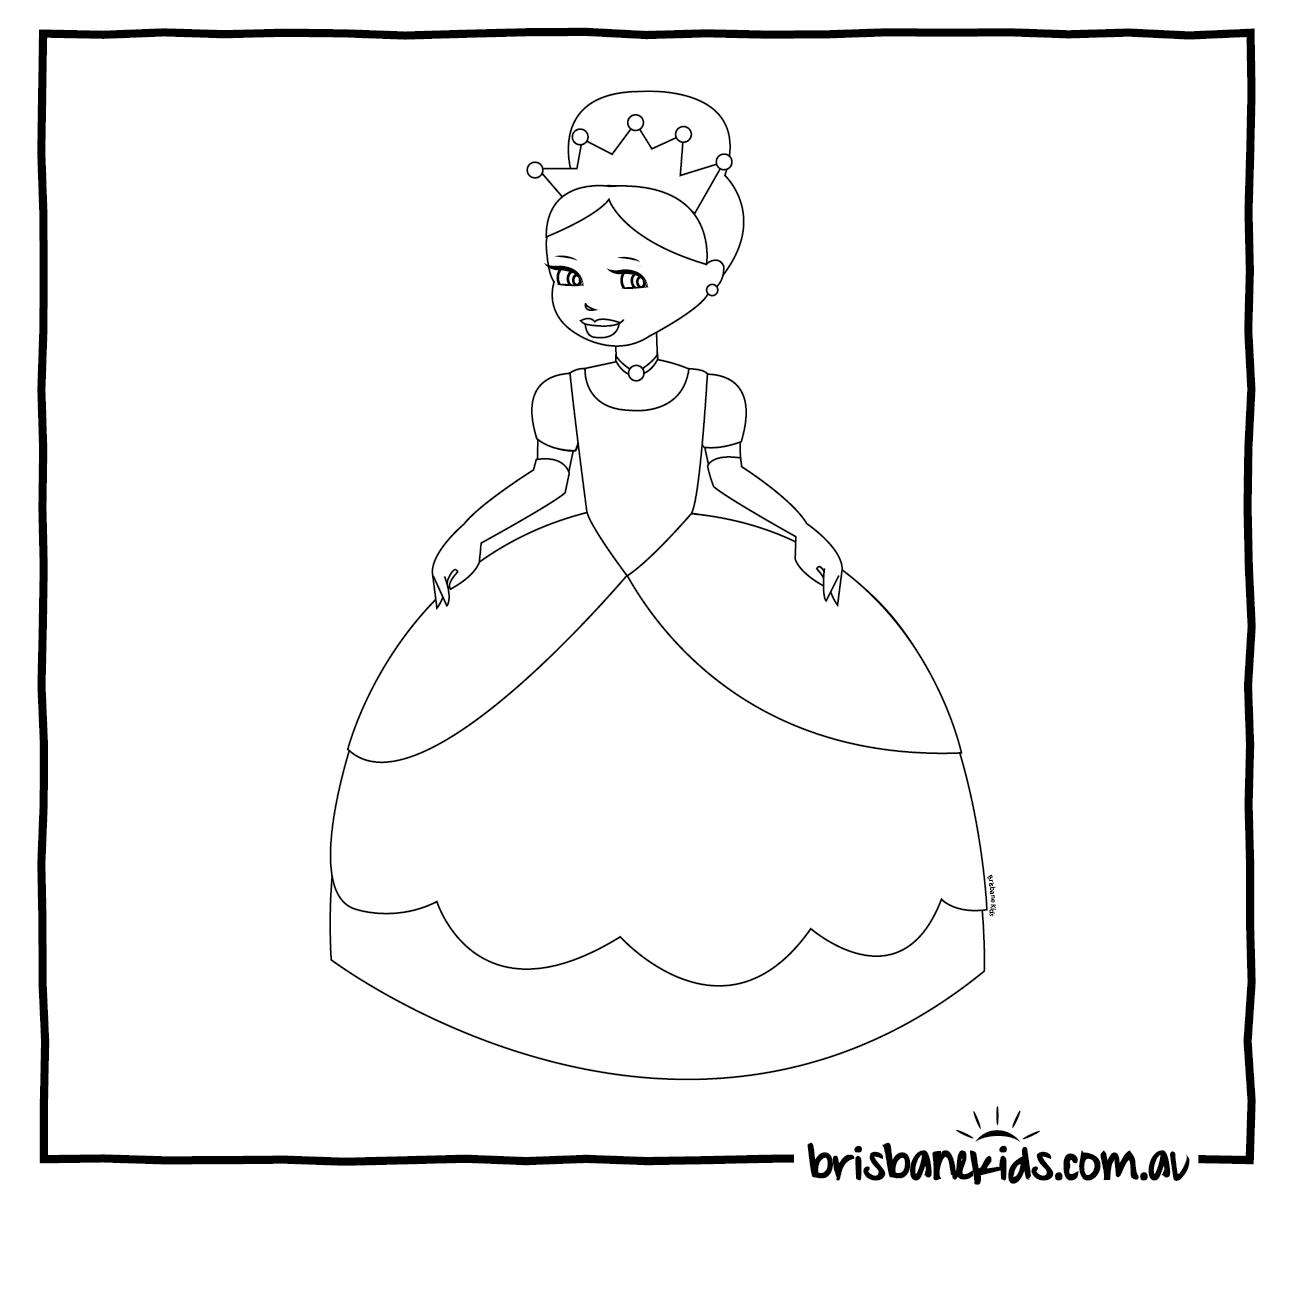 1291x1291 Colouring In Printables For Kids